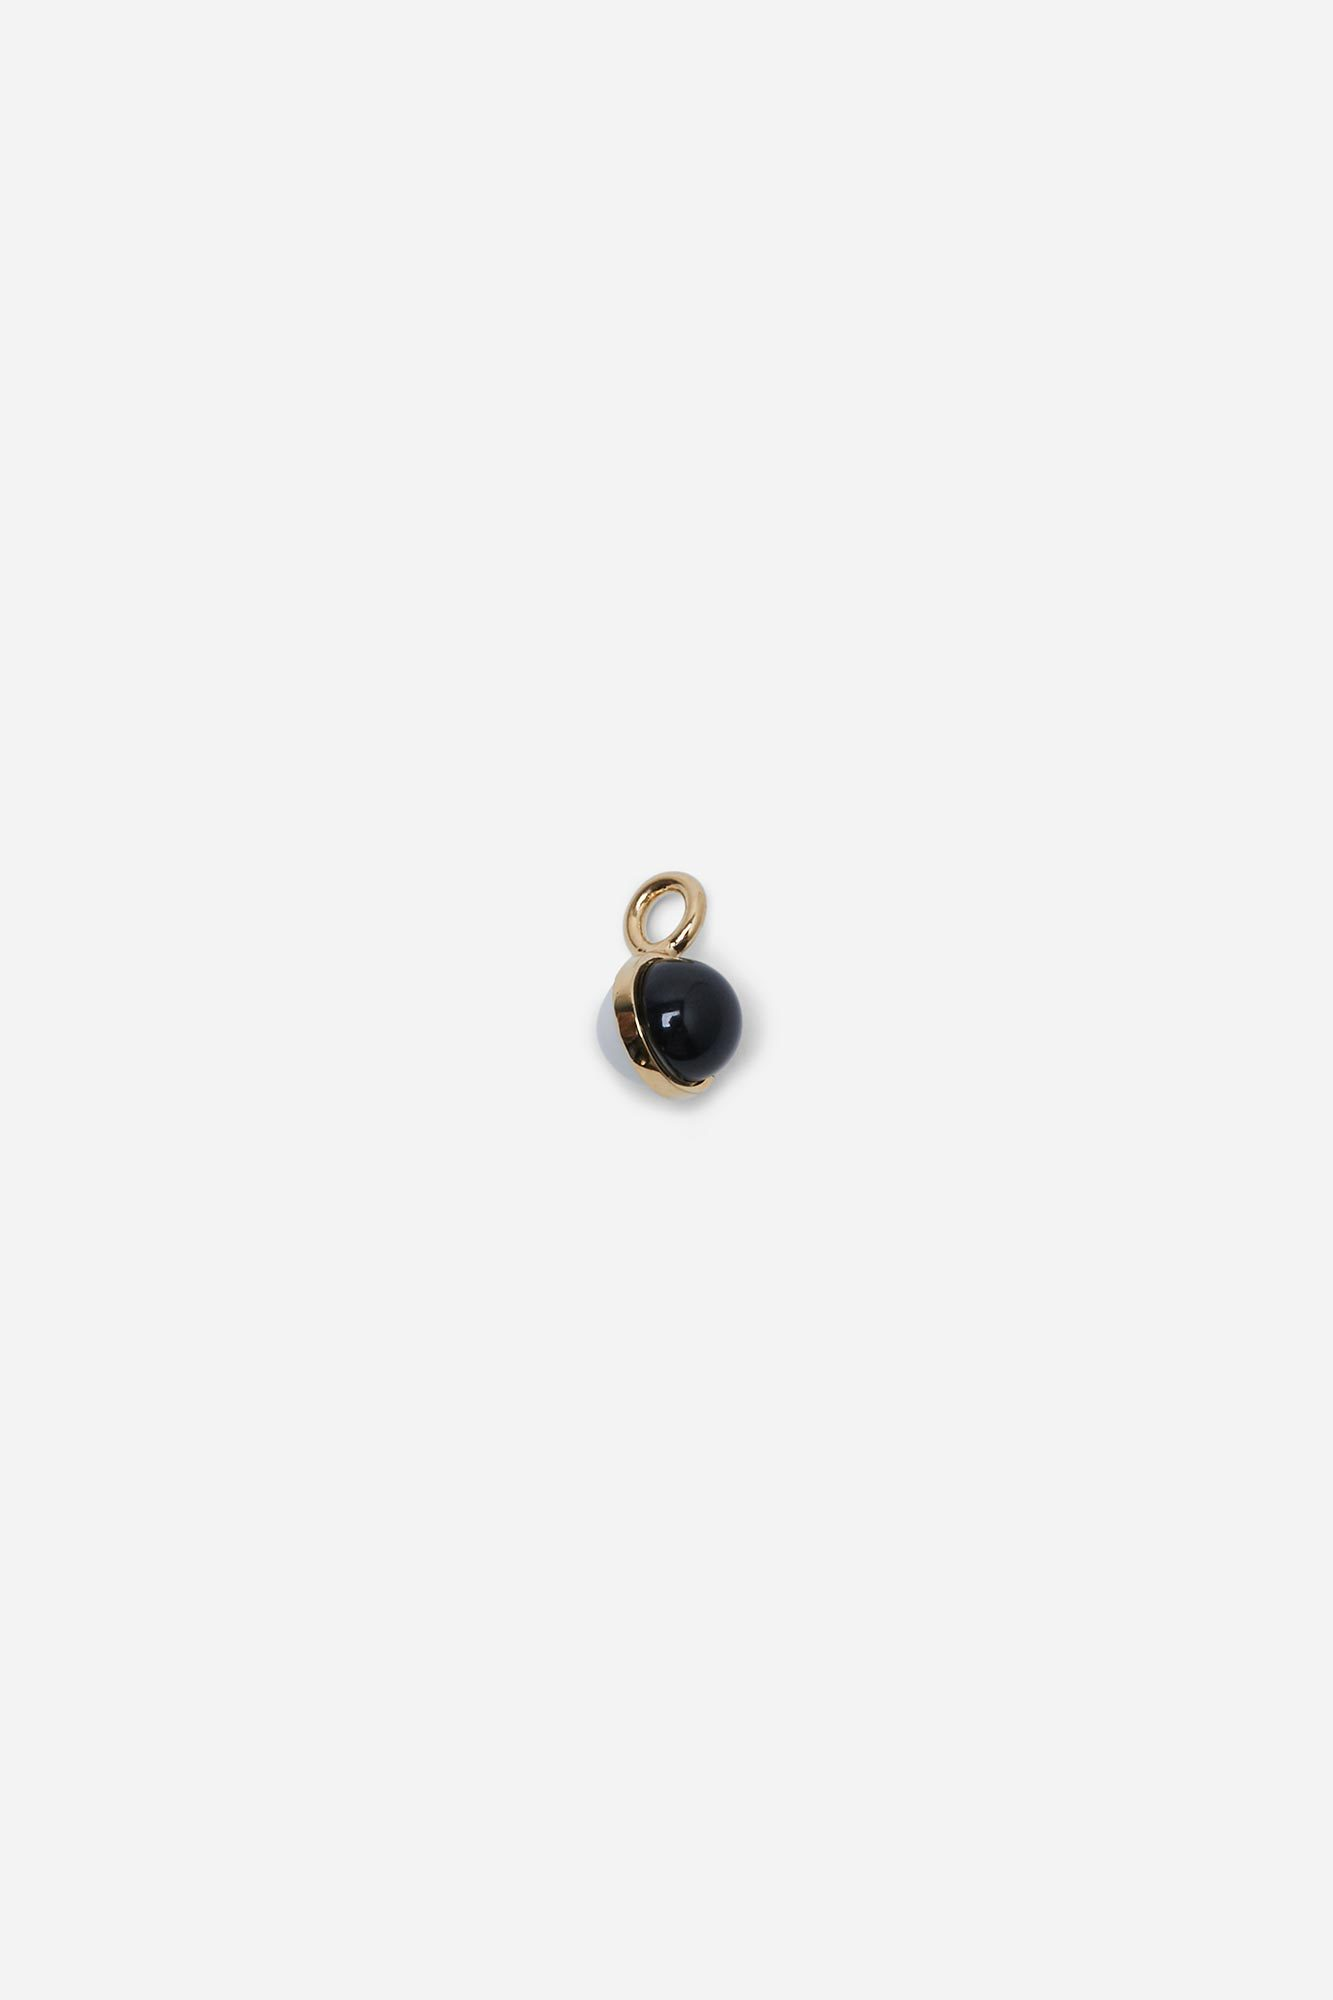 Mini Balloon Charm Black